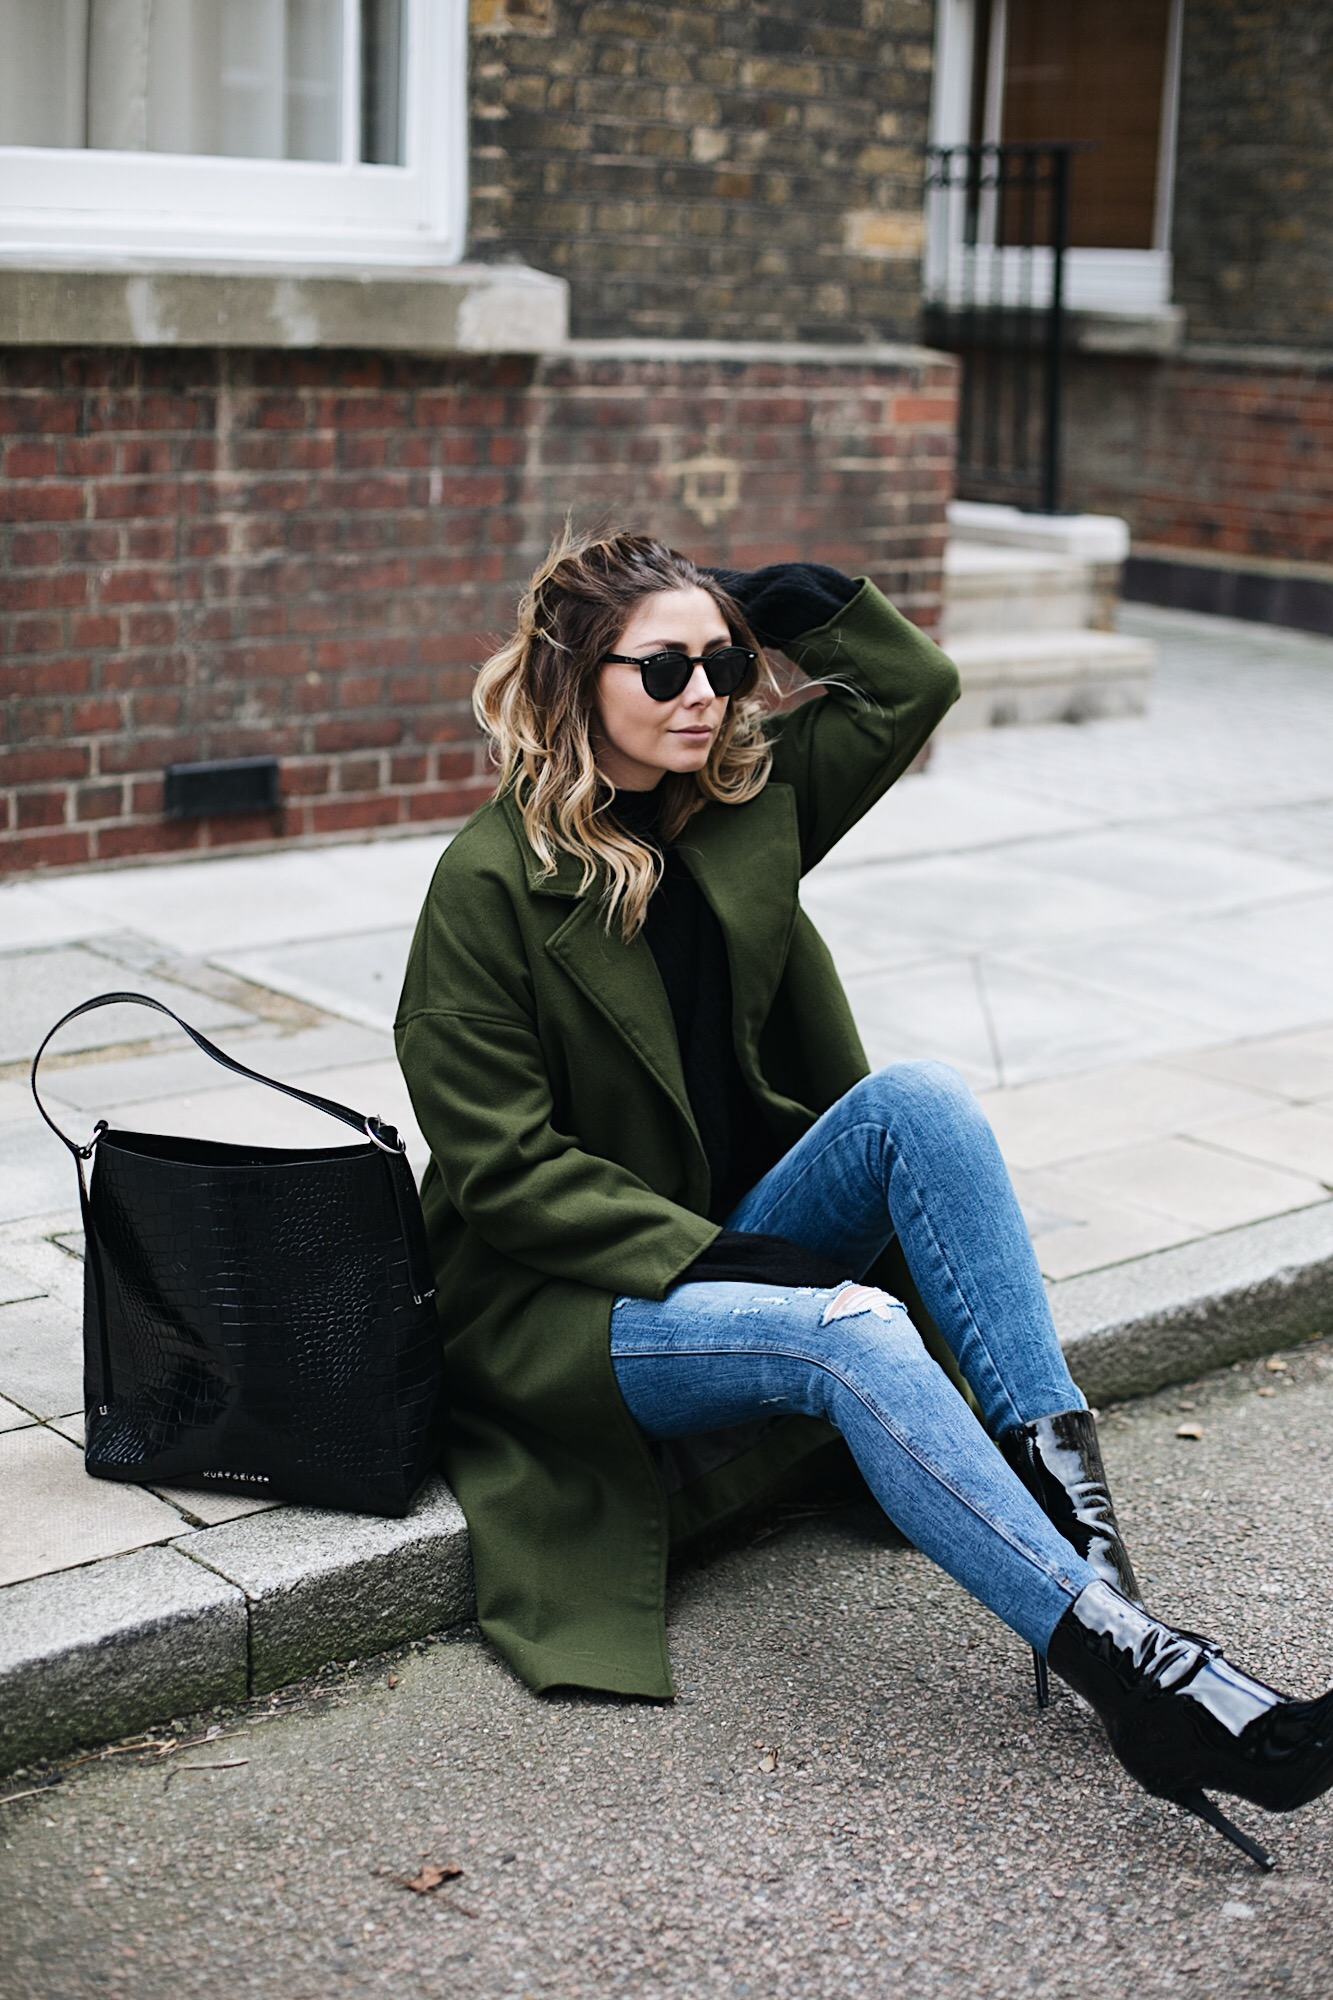 Emma Hill wears khaki coat, black sweater, ripped skinny jeans, large croc bag, black patent vinyl heeled ankle boots, round Rayban sunglasses, chic winter outfit